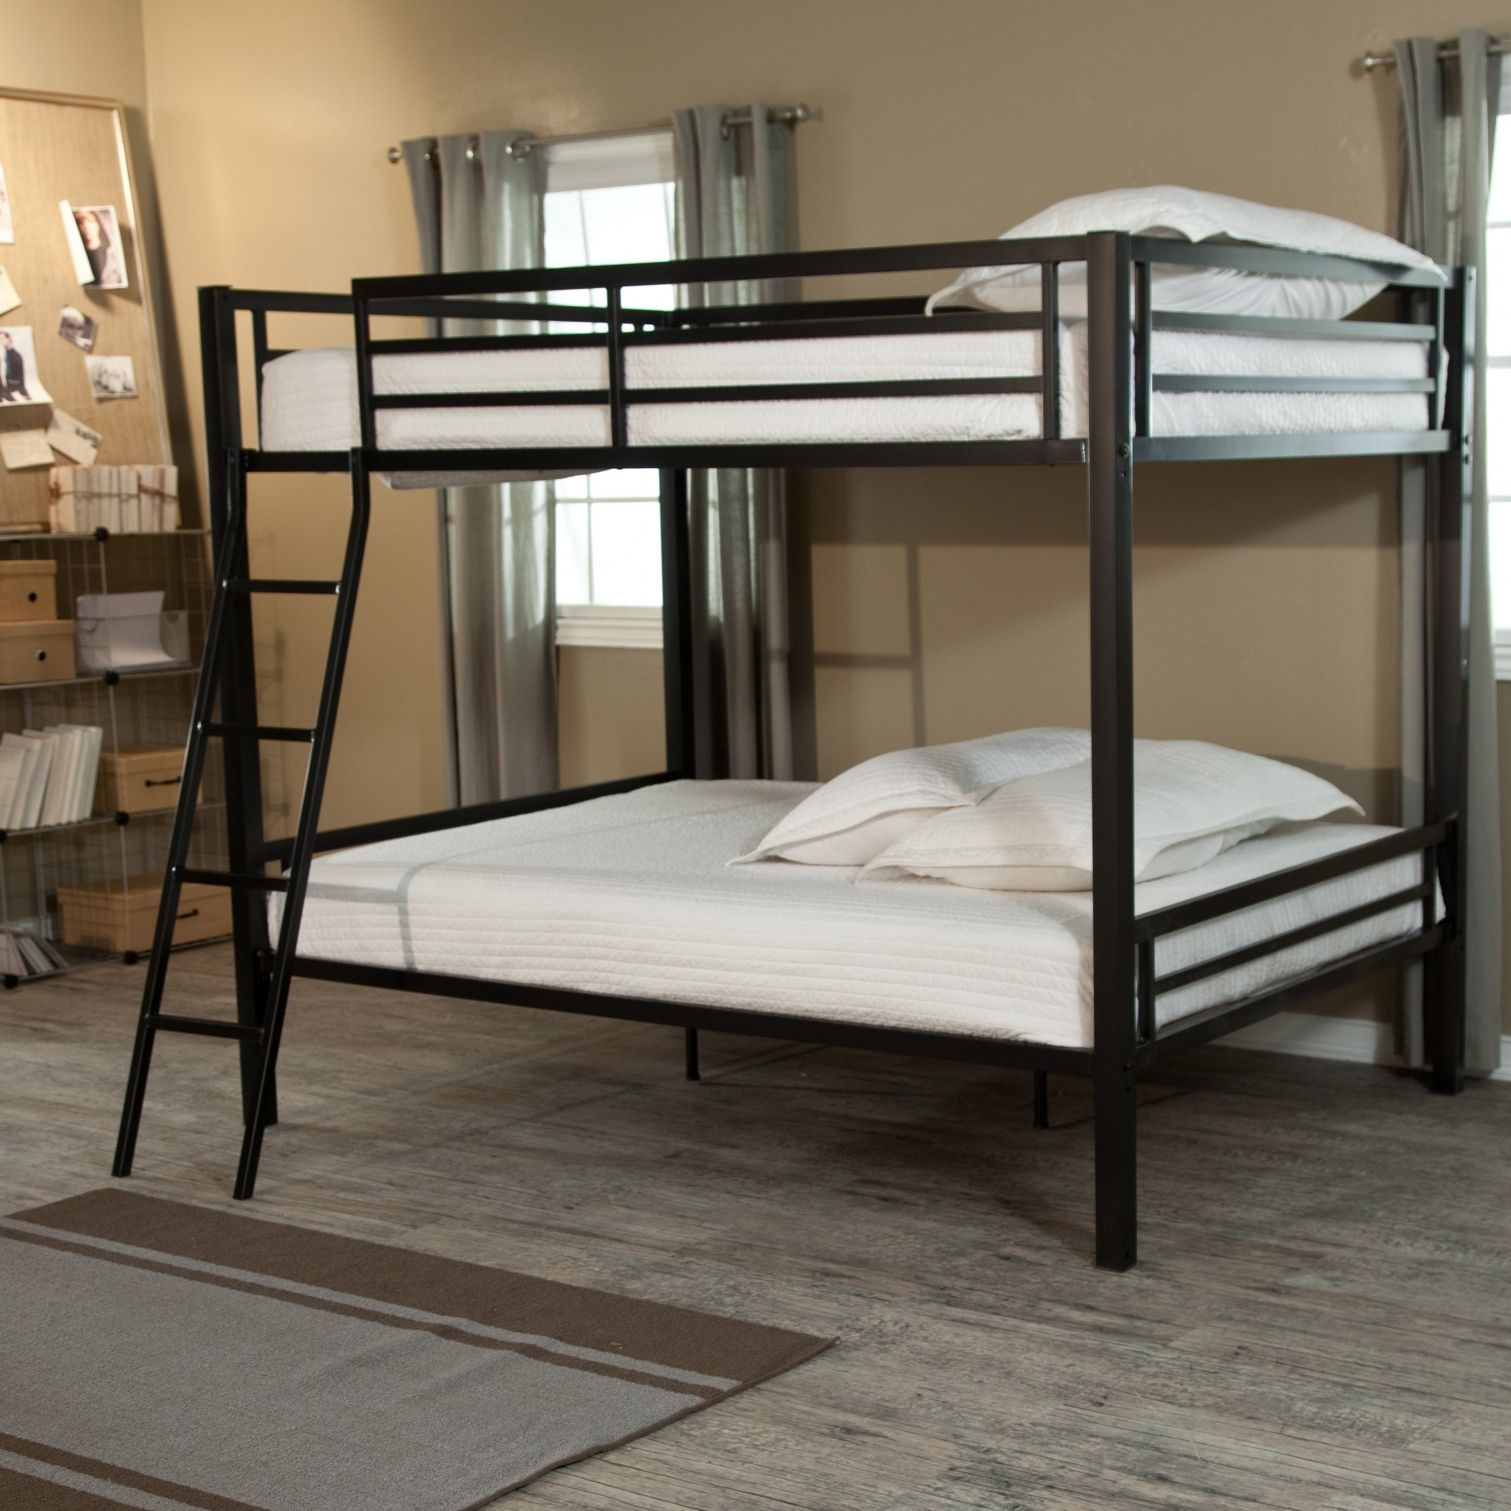 Loft bed plans for full size mattress  Full Over Full Bunk Beds for Adults  Interior Paint Colors for